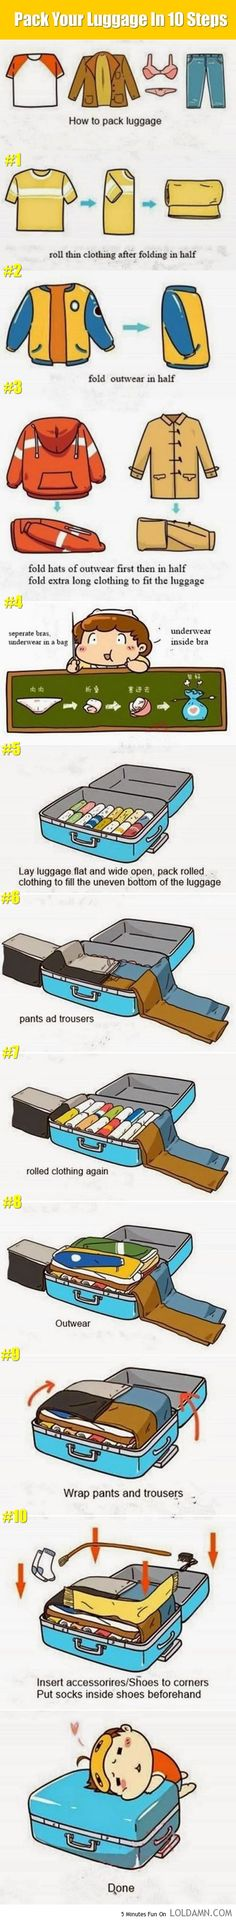 Preparing A Long Trip? Pack Your Luggage Like A Master In 10 Steps.